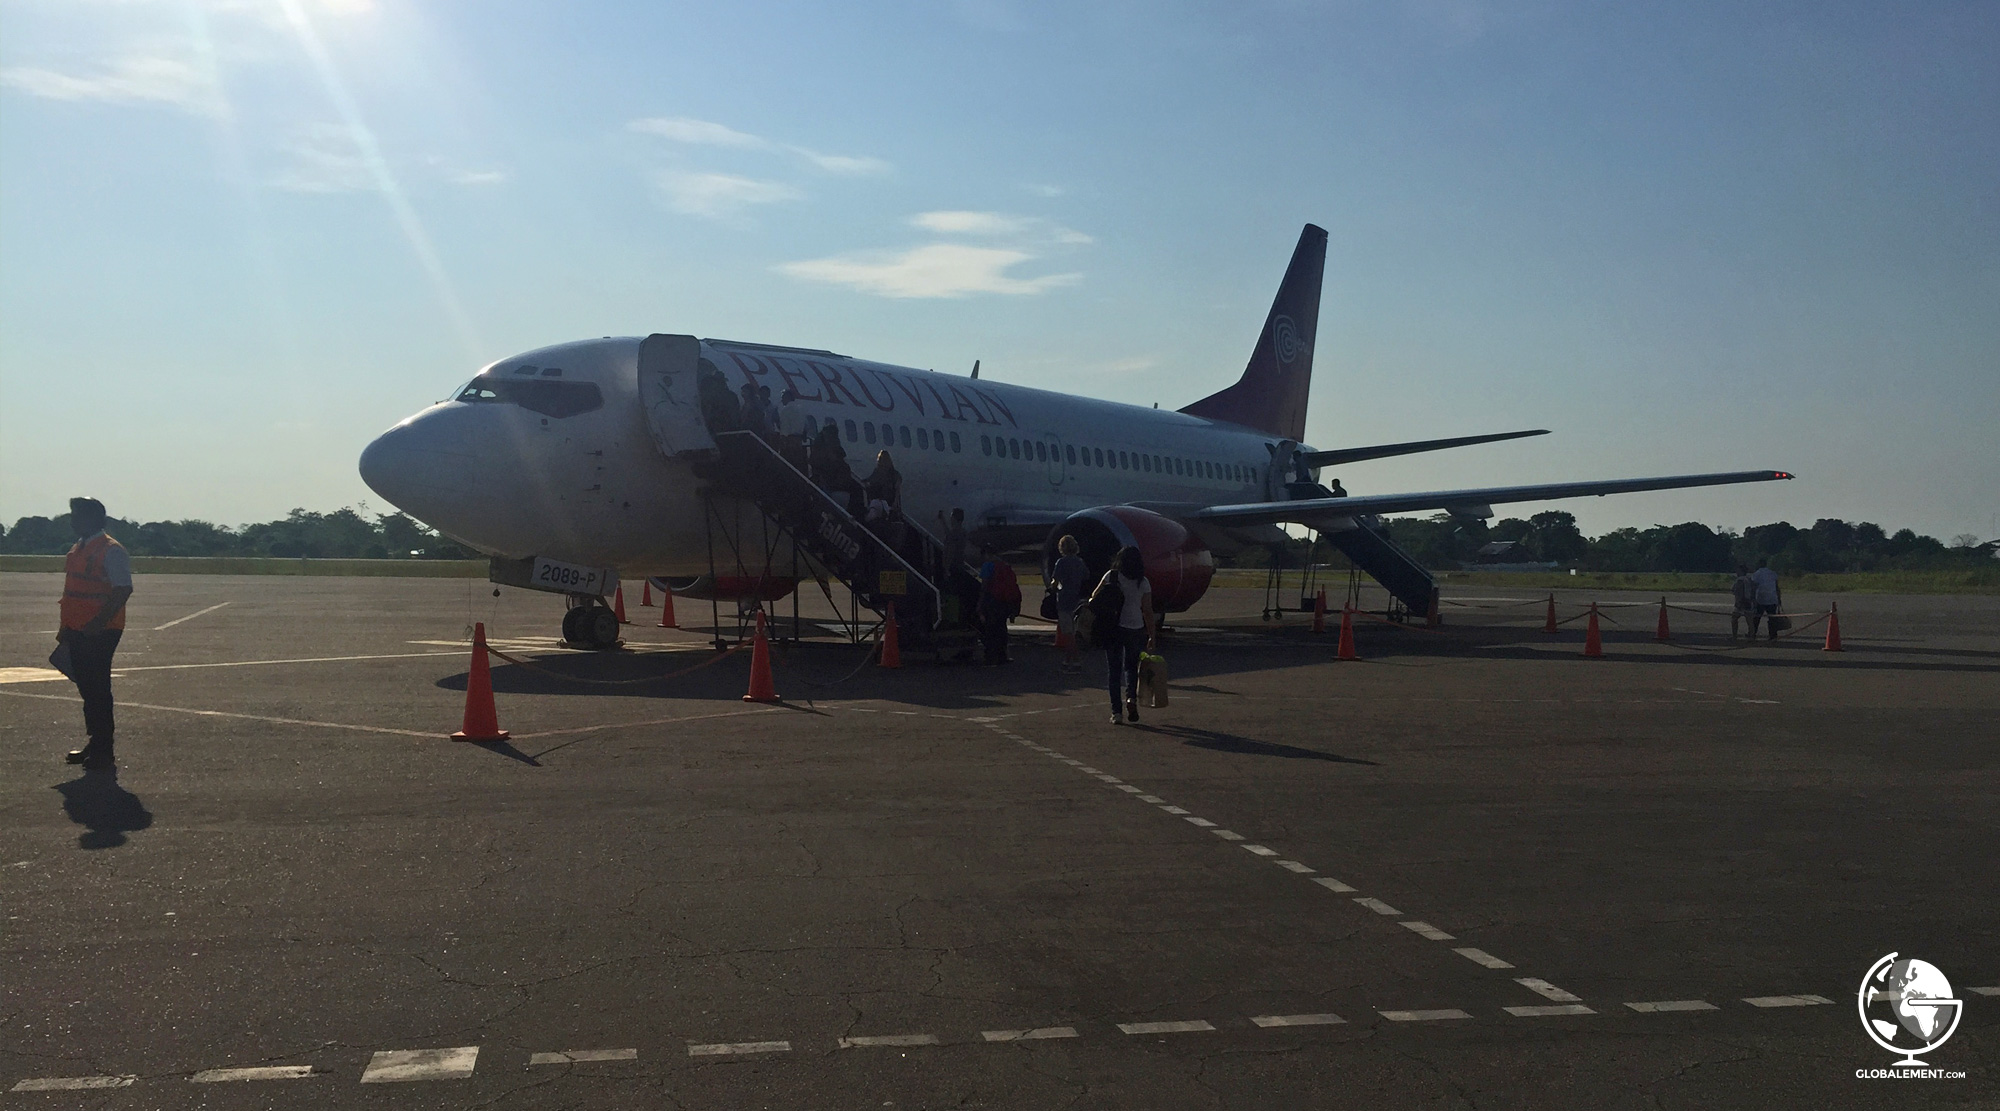 Peruvian Airlines Pucallpa